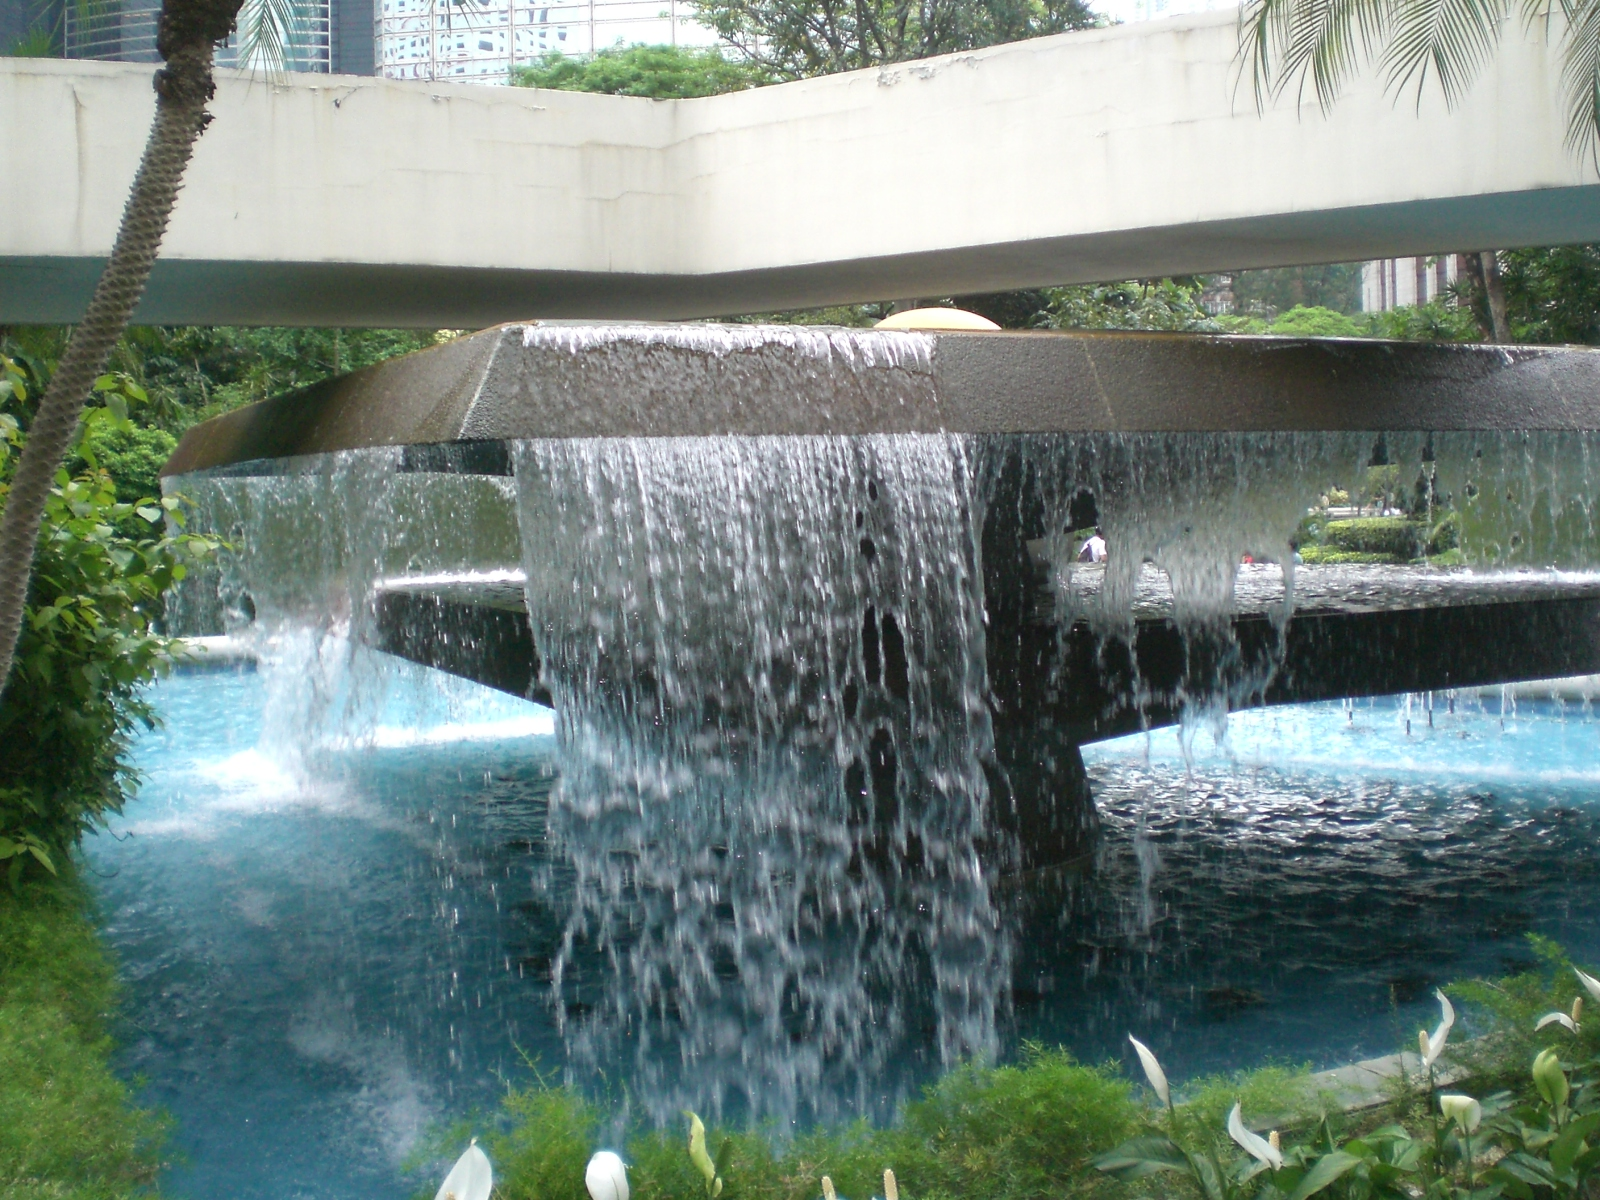 FileHK Central Chater Garden Pool 1JPG Wikimedia Commons